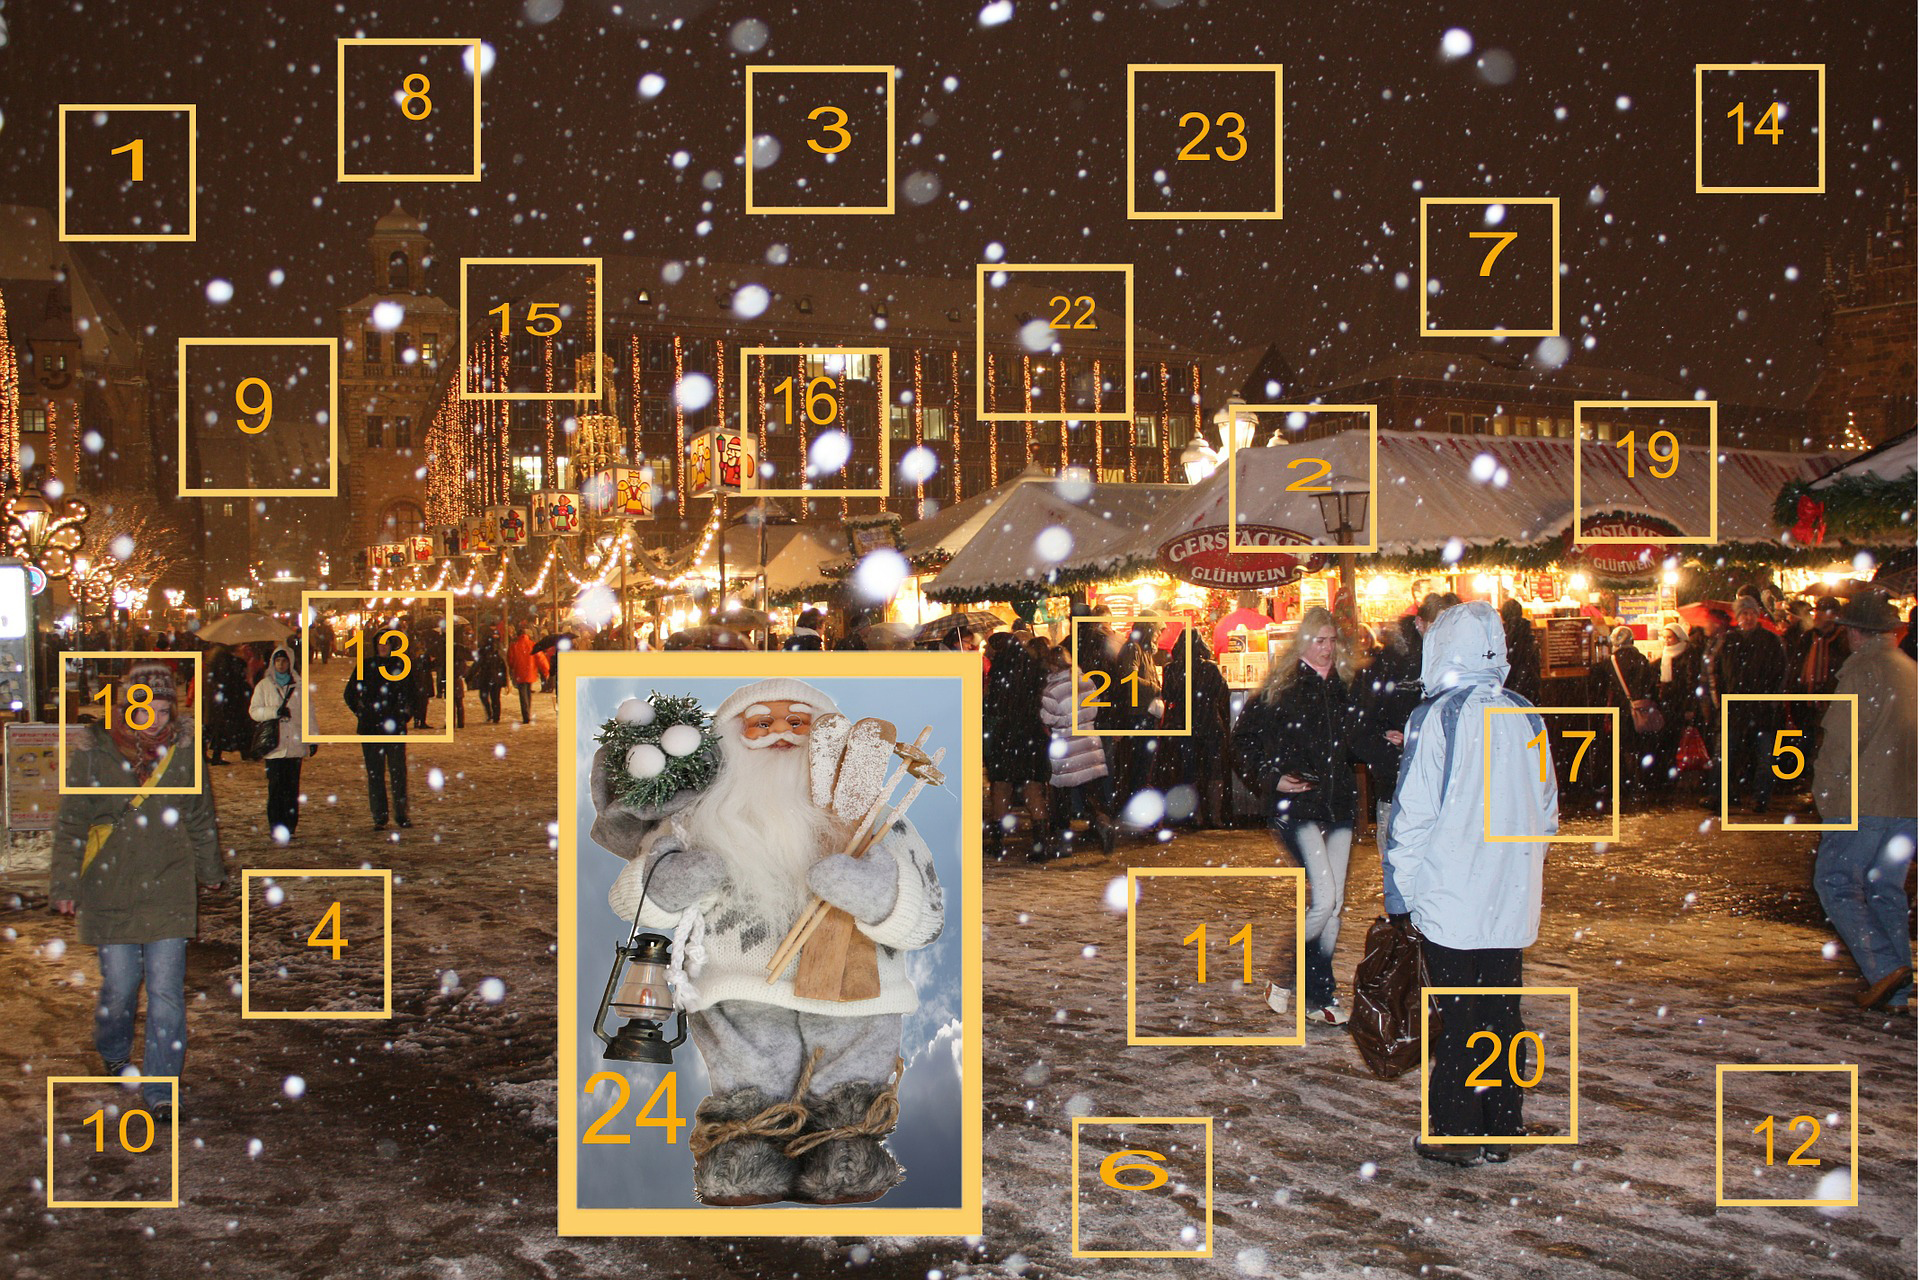 Get in the holiday spirit with Christmas advent calendar apps